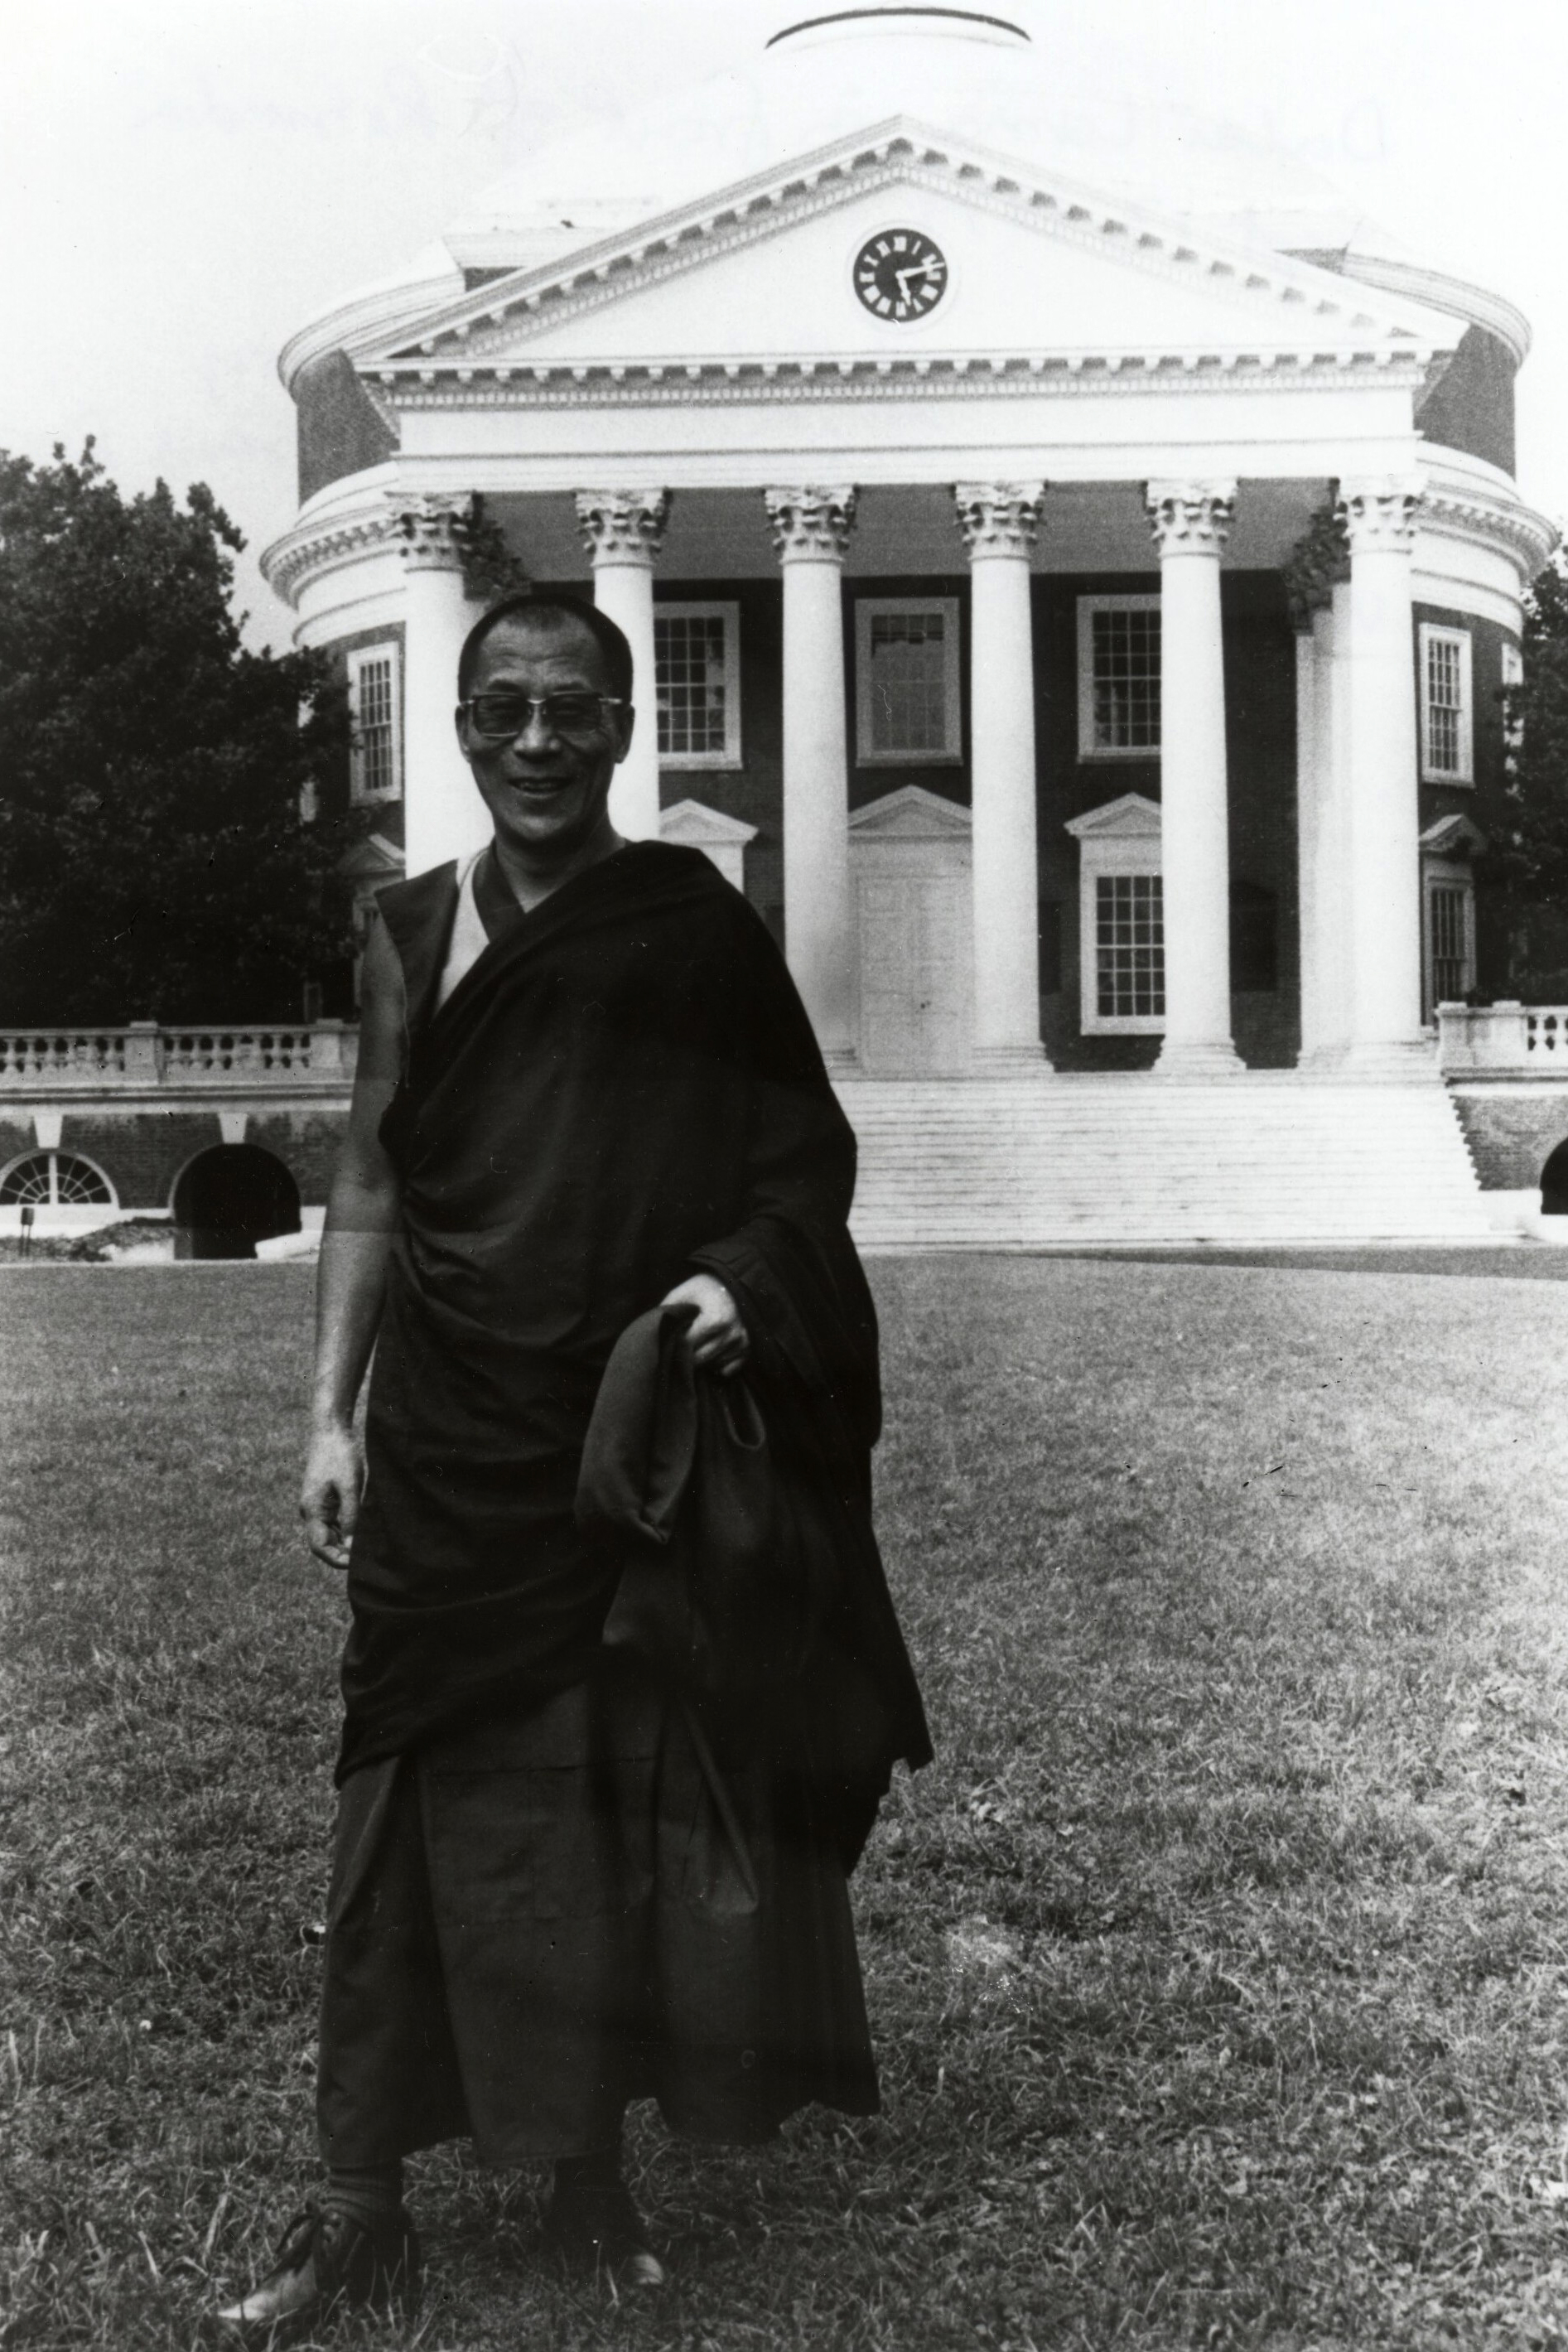 The Dalai Lama during a visit to Grounds in 1979. (Image courtesy Albert and Shirley Small Special Collections Library)